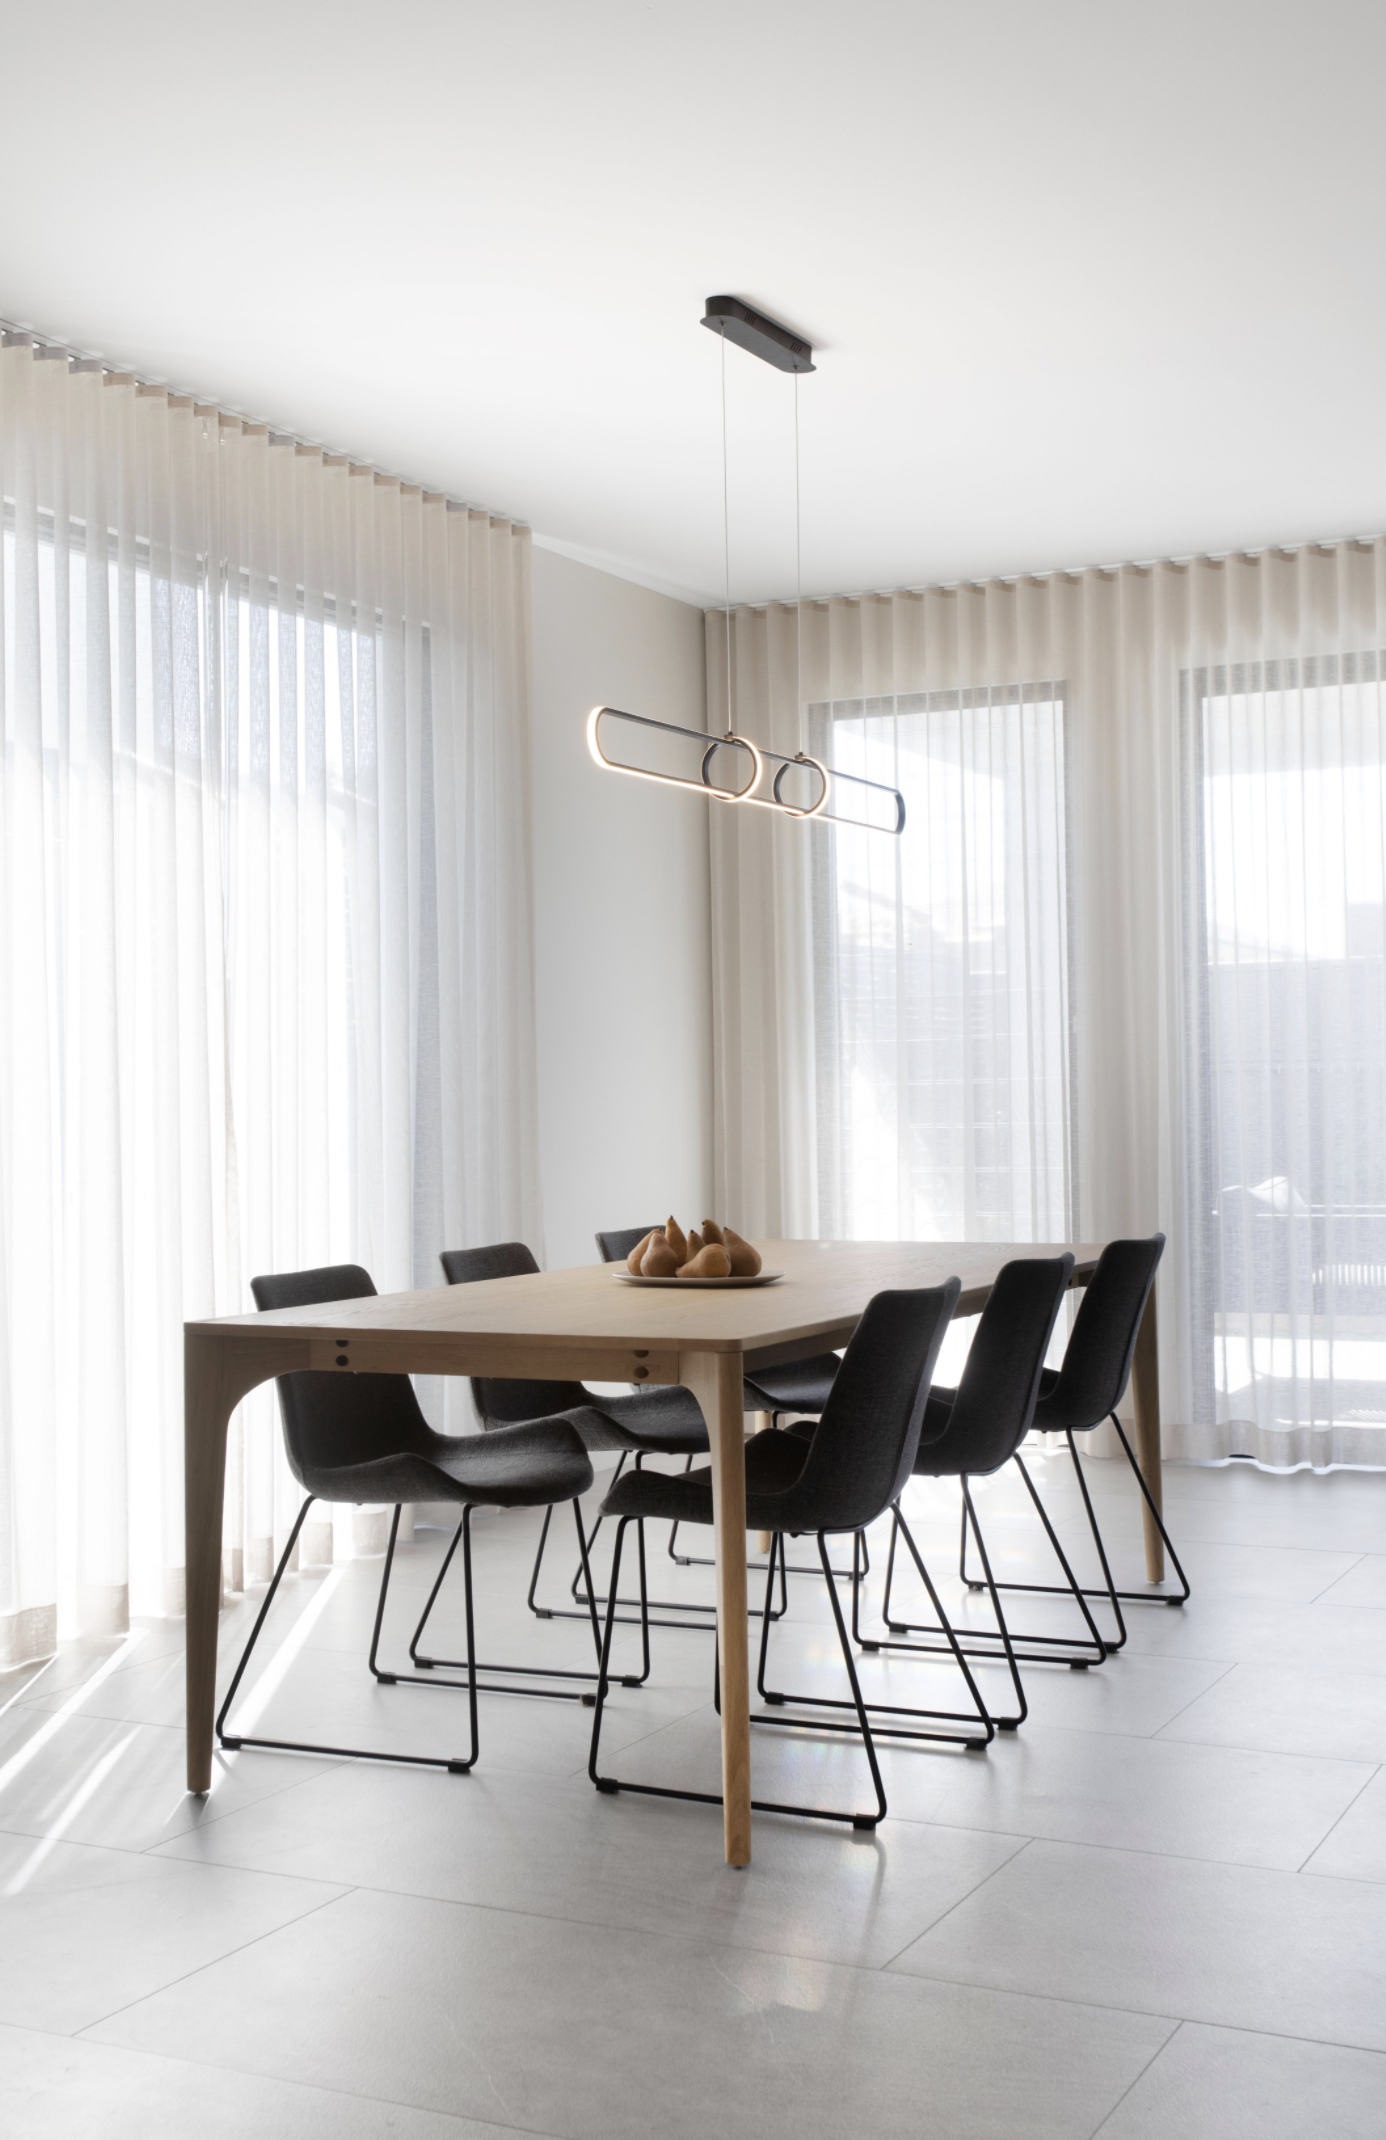 How To Choose The Perfect Dining Room Pendant Light Zephyr Stone